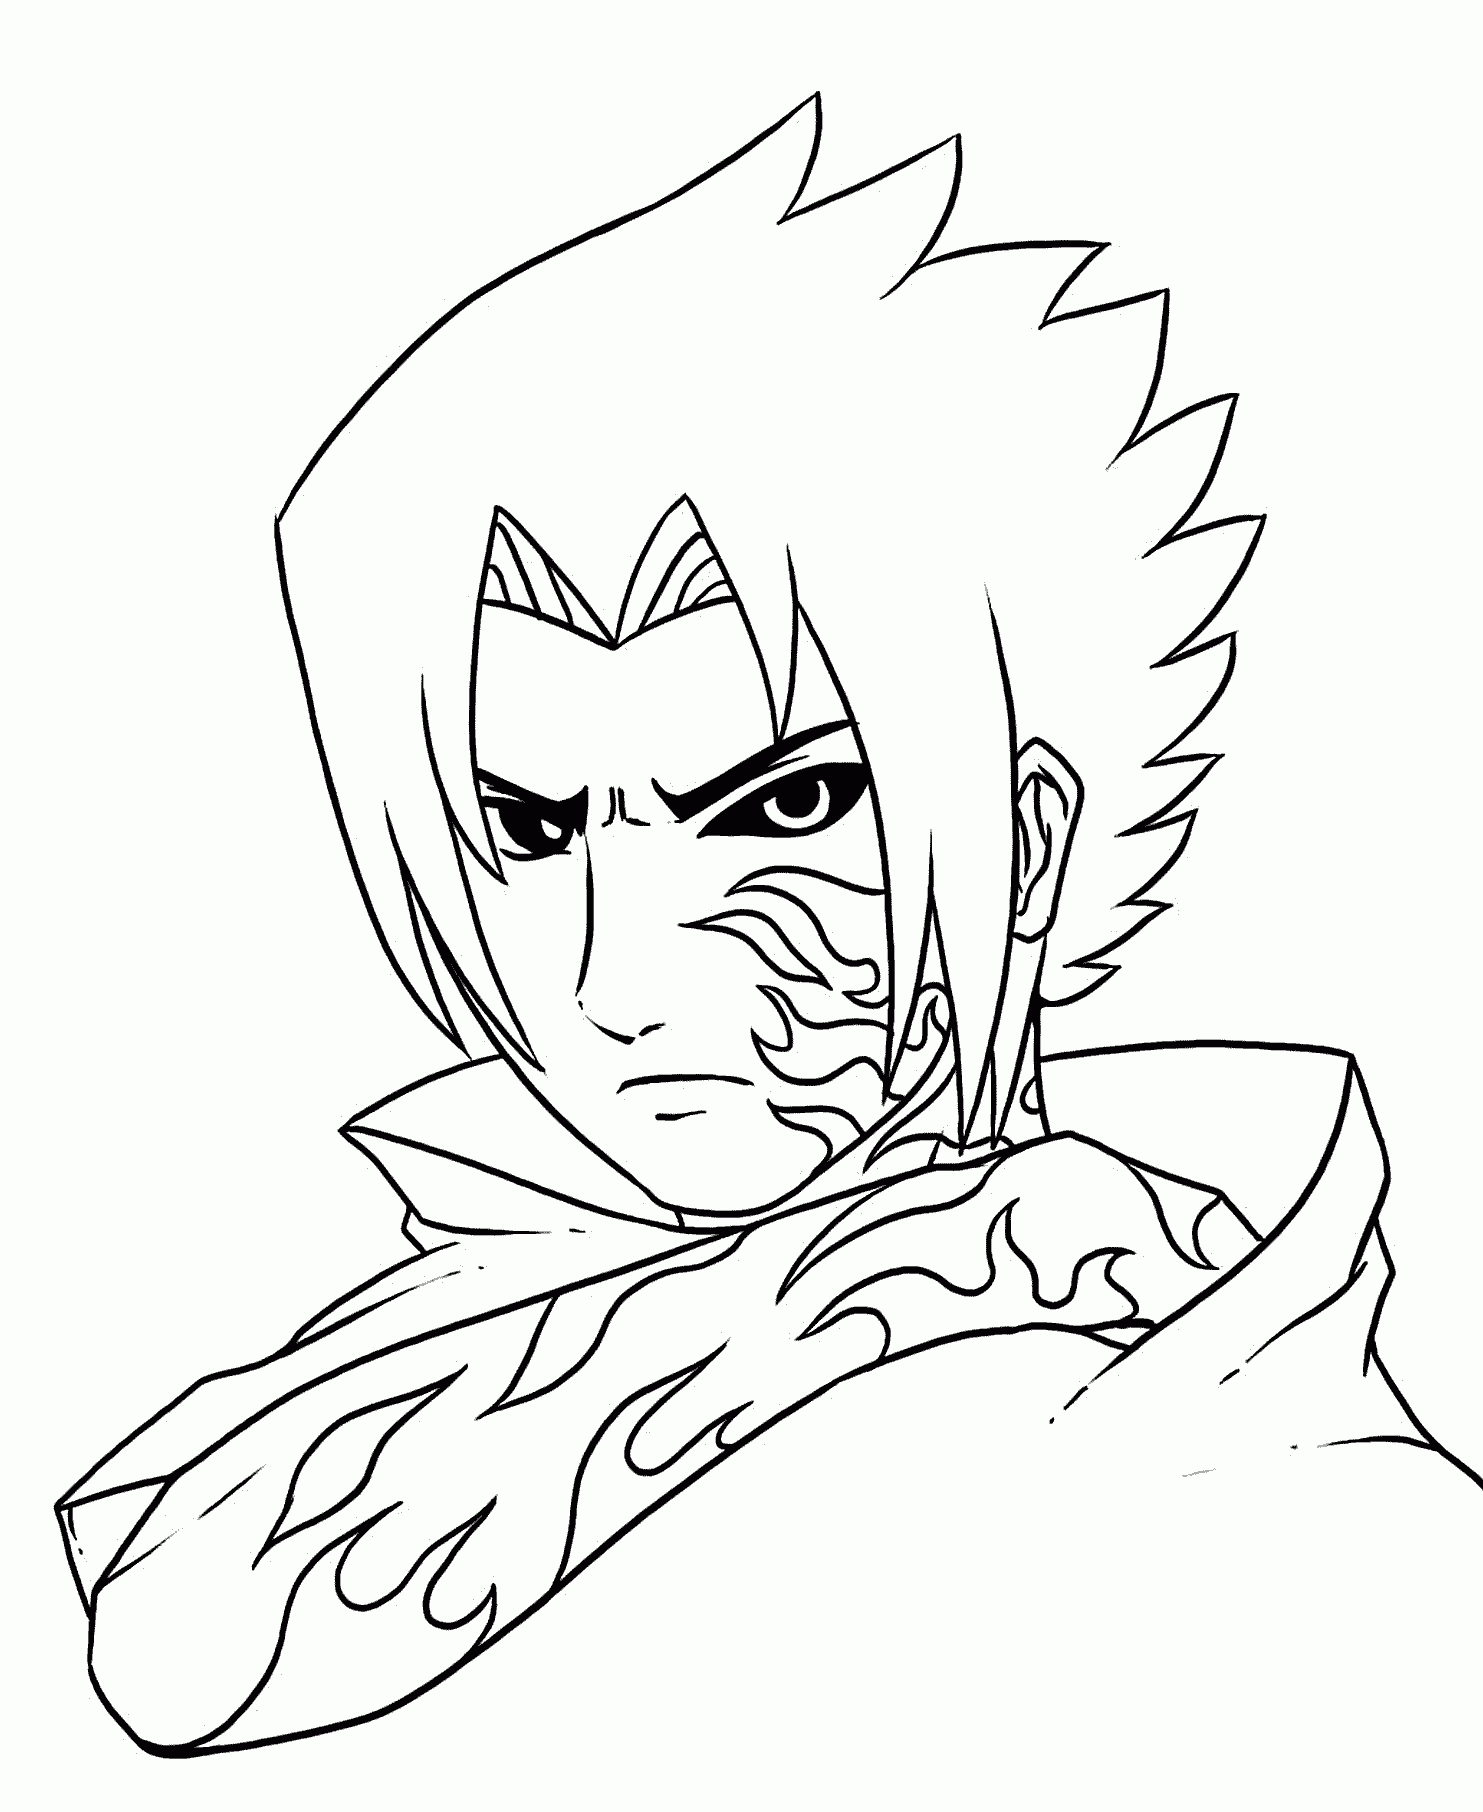 Anime Drawing Books Free Naruto Face Anime Coloring Pages for Kids Printable Of Free Coloring Pages Printable New Kilari and Seiji Anime Coloring Printable